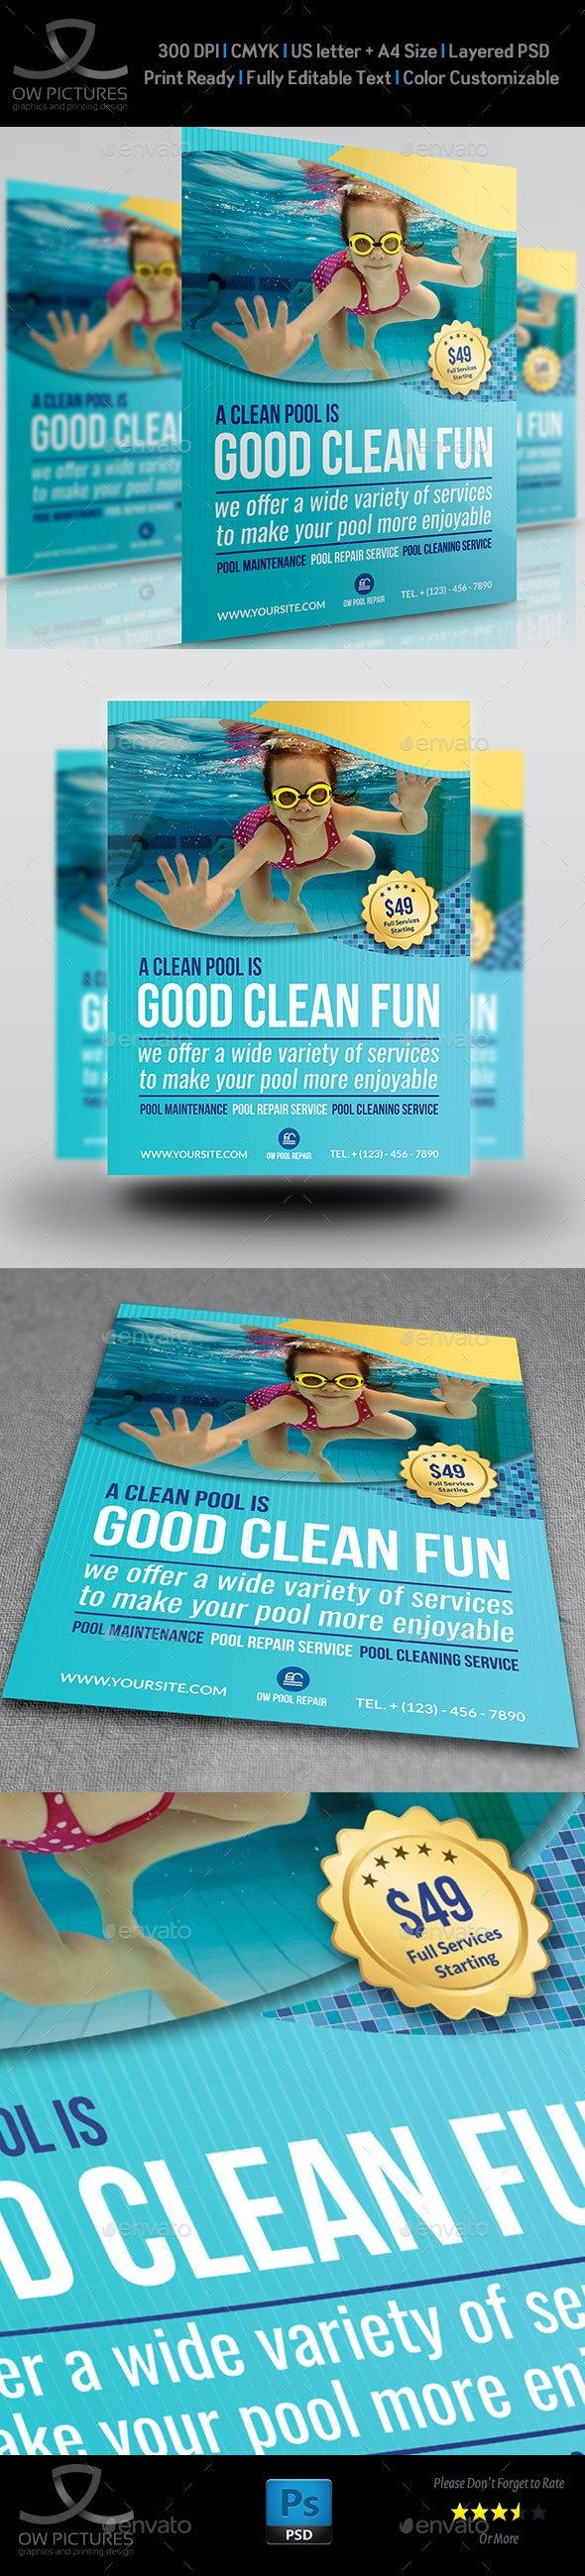 Swimming Pool Cleaning Service Flyer Template By OW